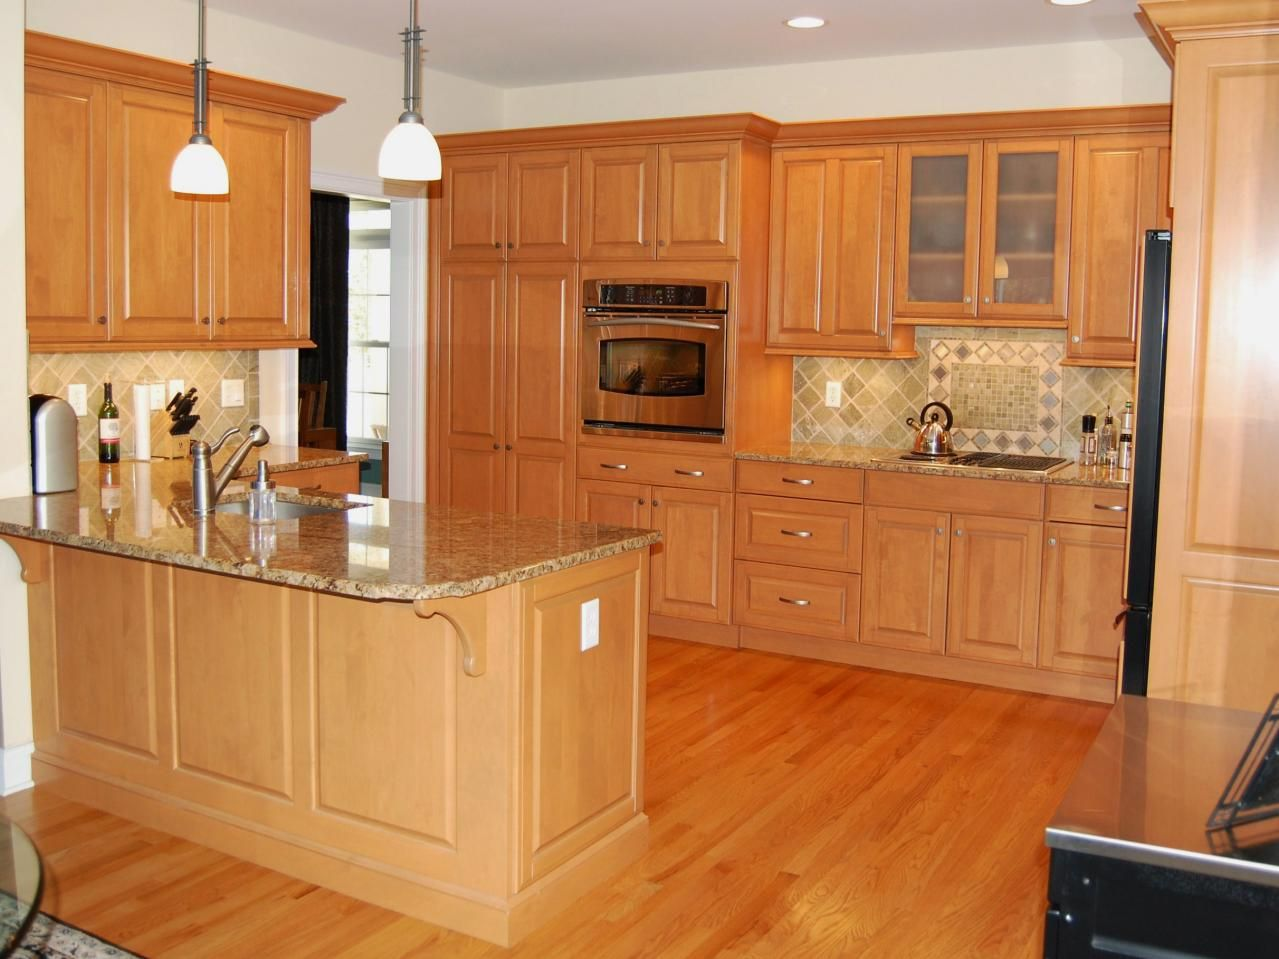 Helen Richardson designed this traditional kitchen with